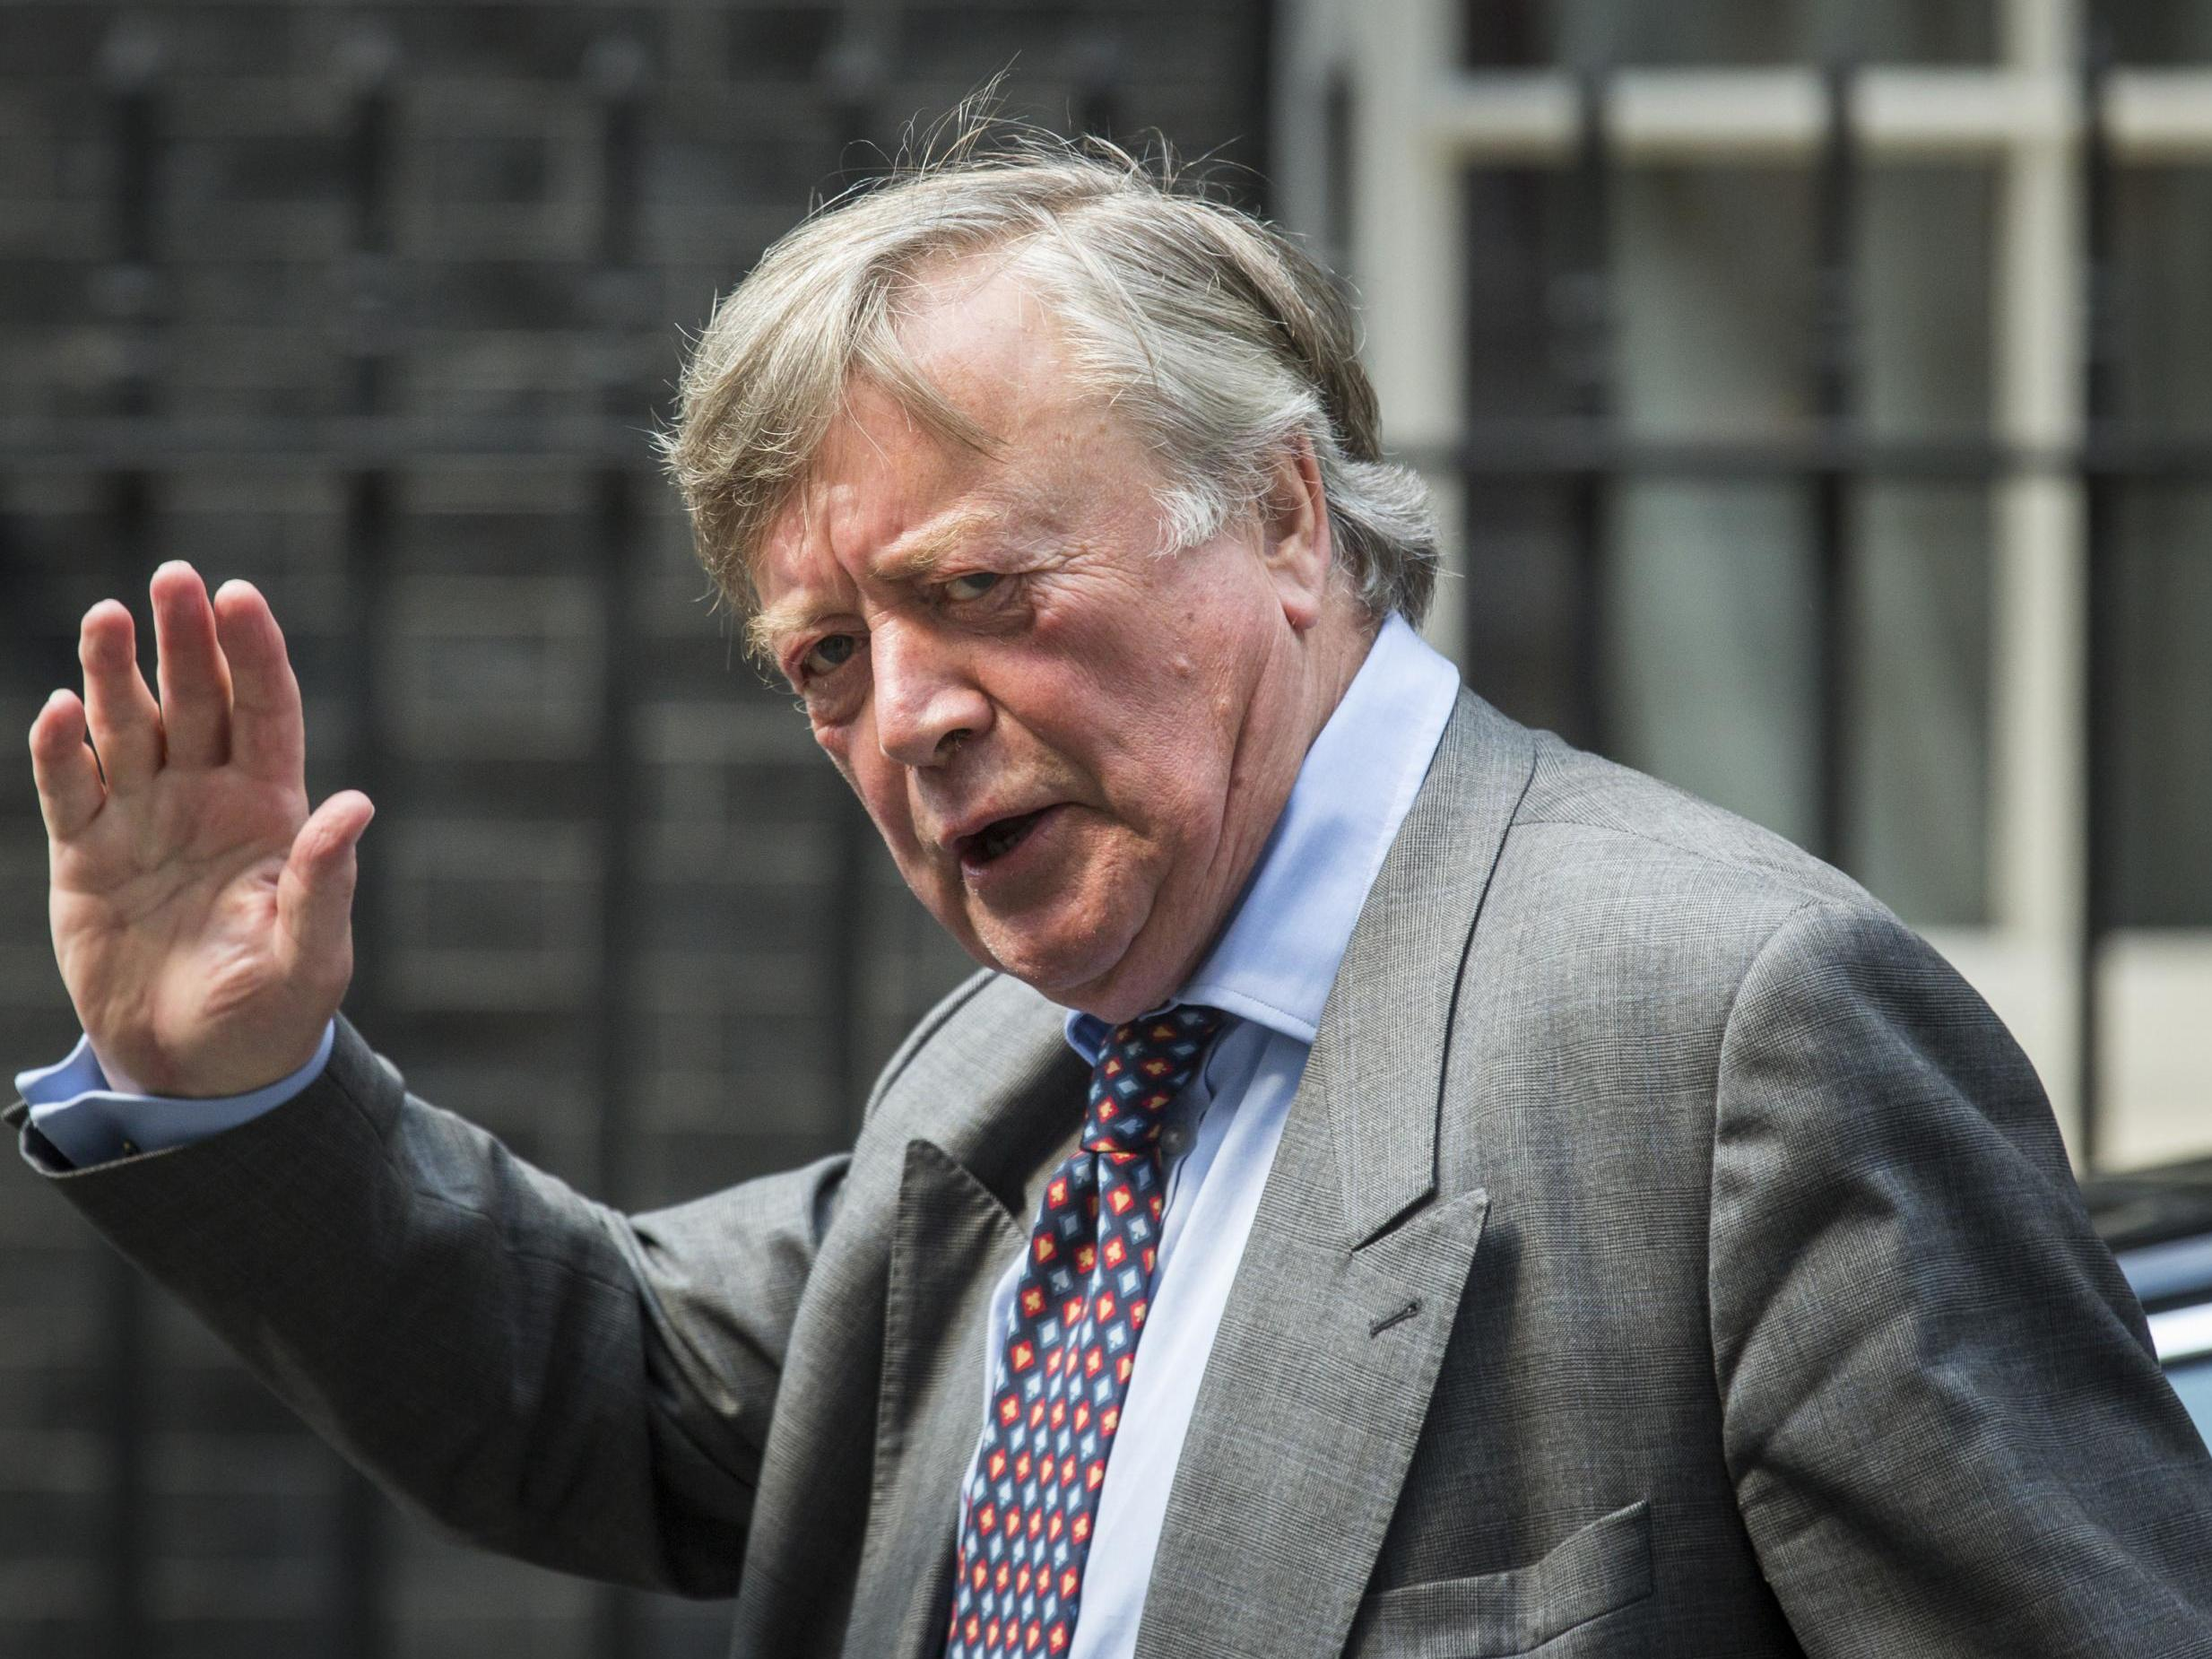 Boris Johnson could be out of the job within months – here's how Ken Clarke would replace him